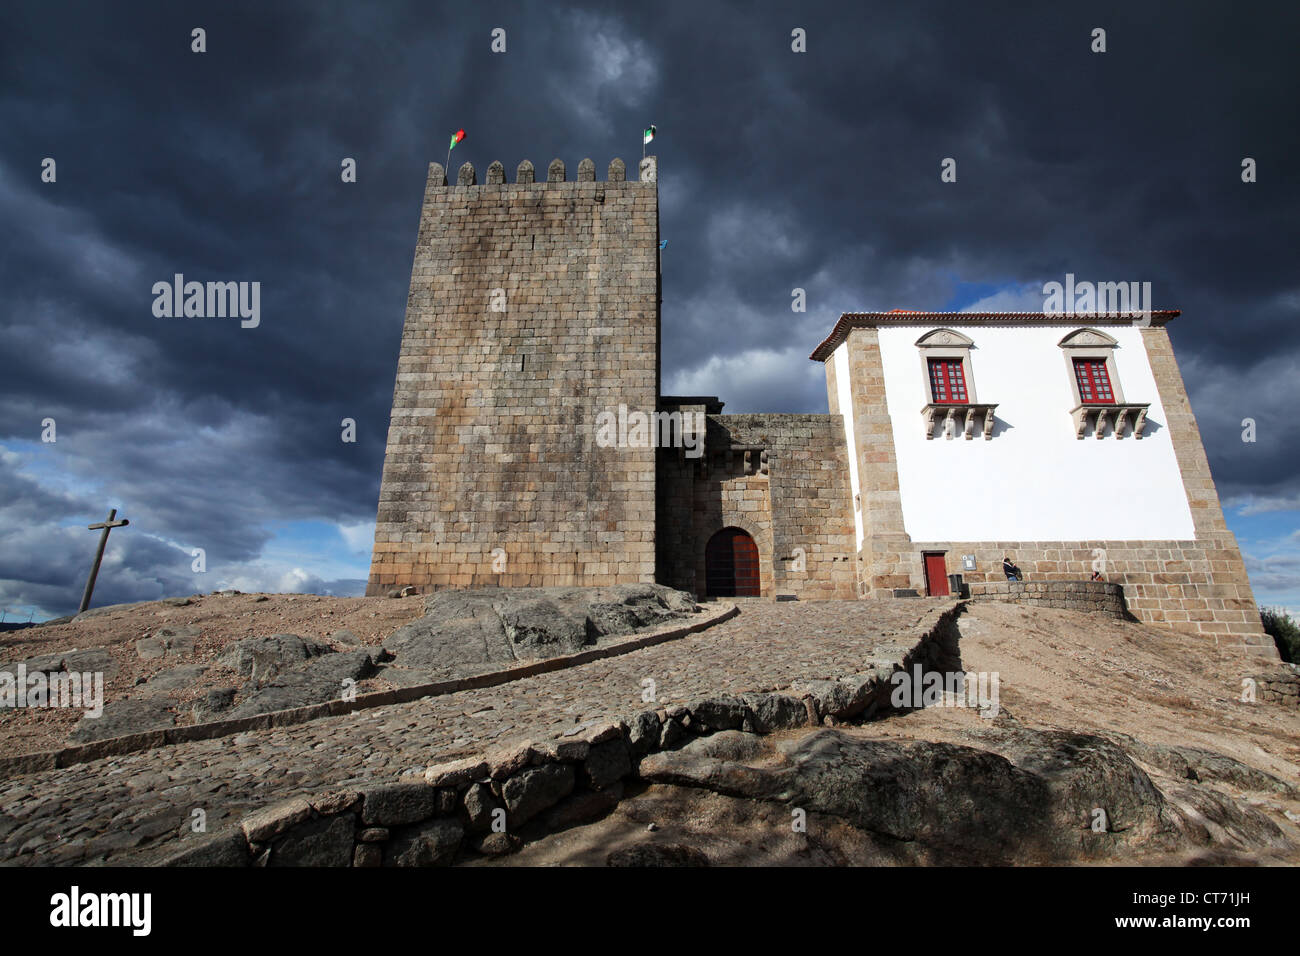 The castle of Belmonte, Portugal, former house of Pedro Álvares Cabral - Stock Image